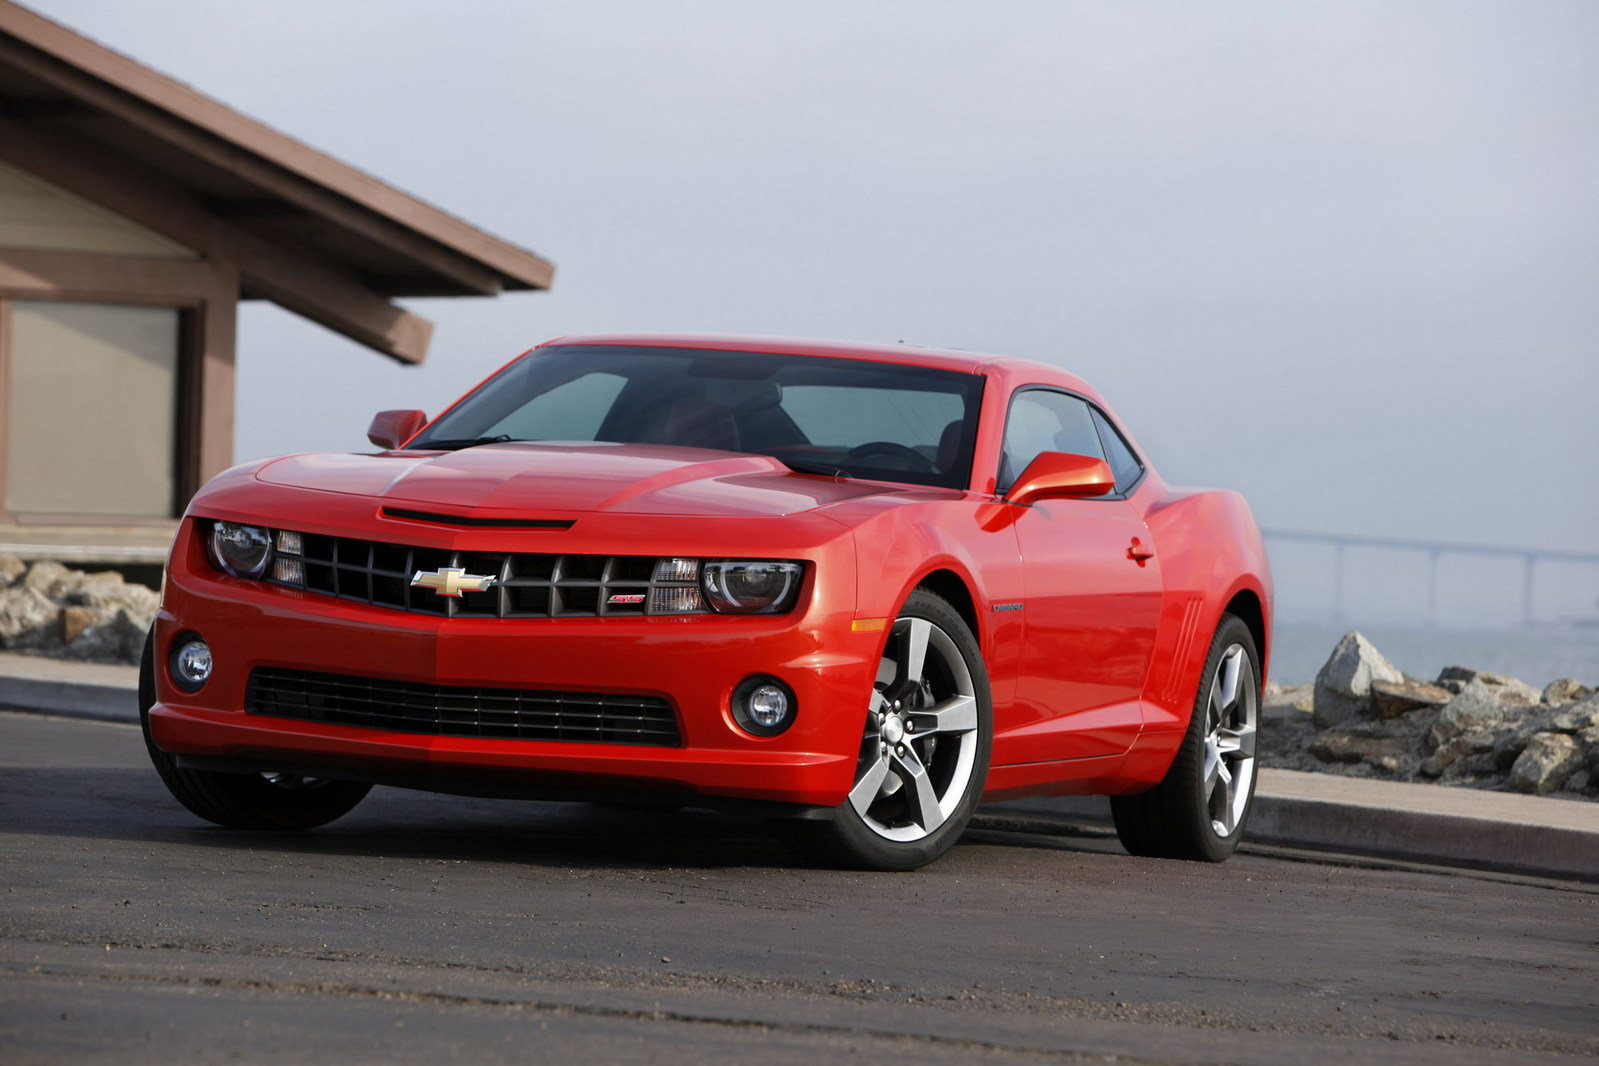 All Chevy chevy cars 2011 2011 Chevrolet Camaro Review - Top Speed